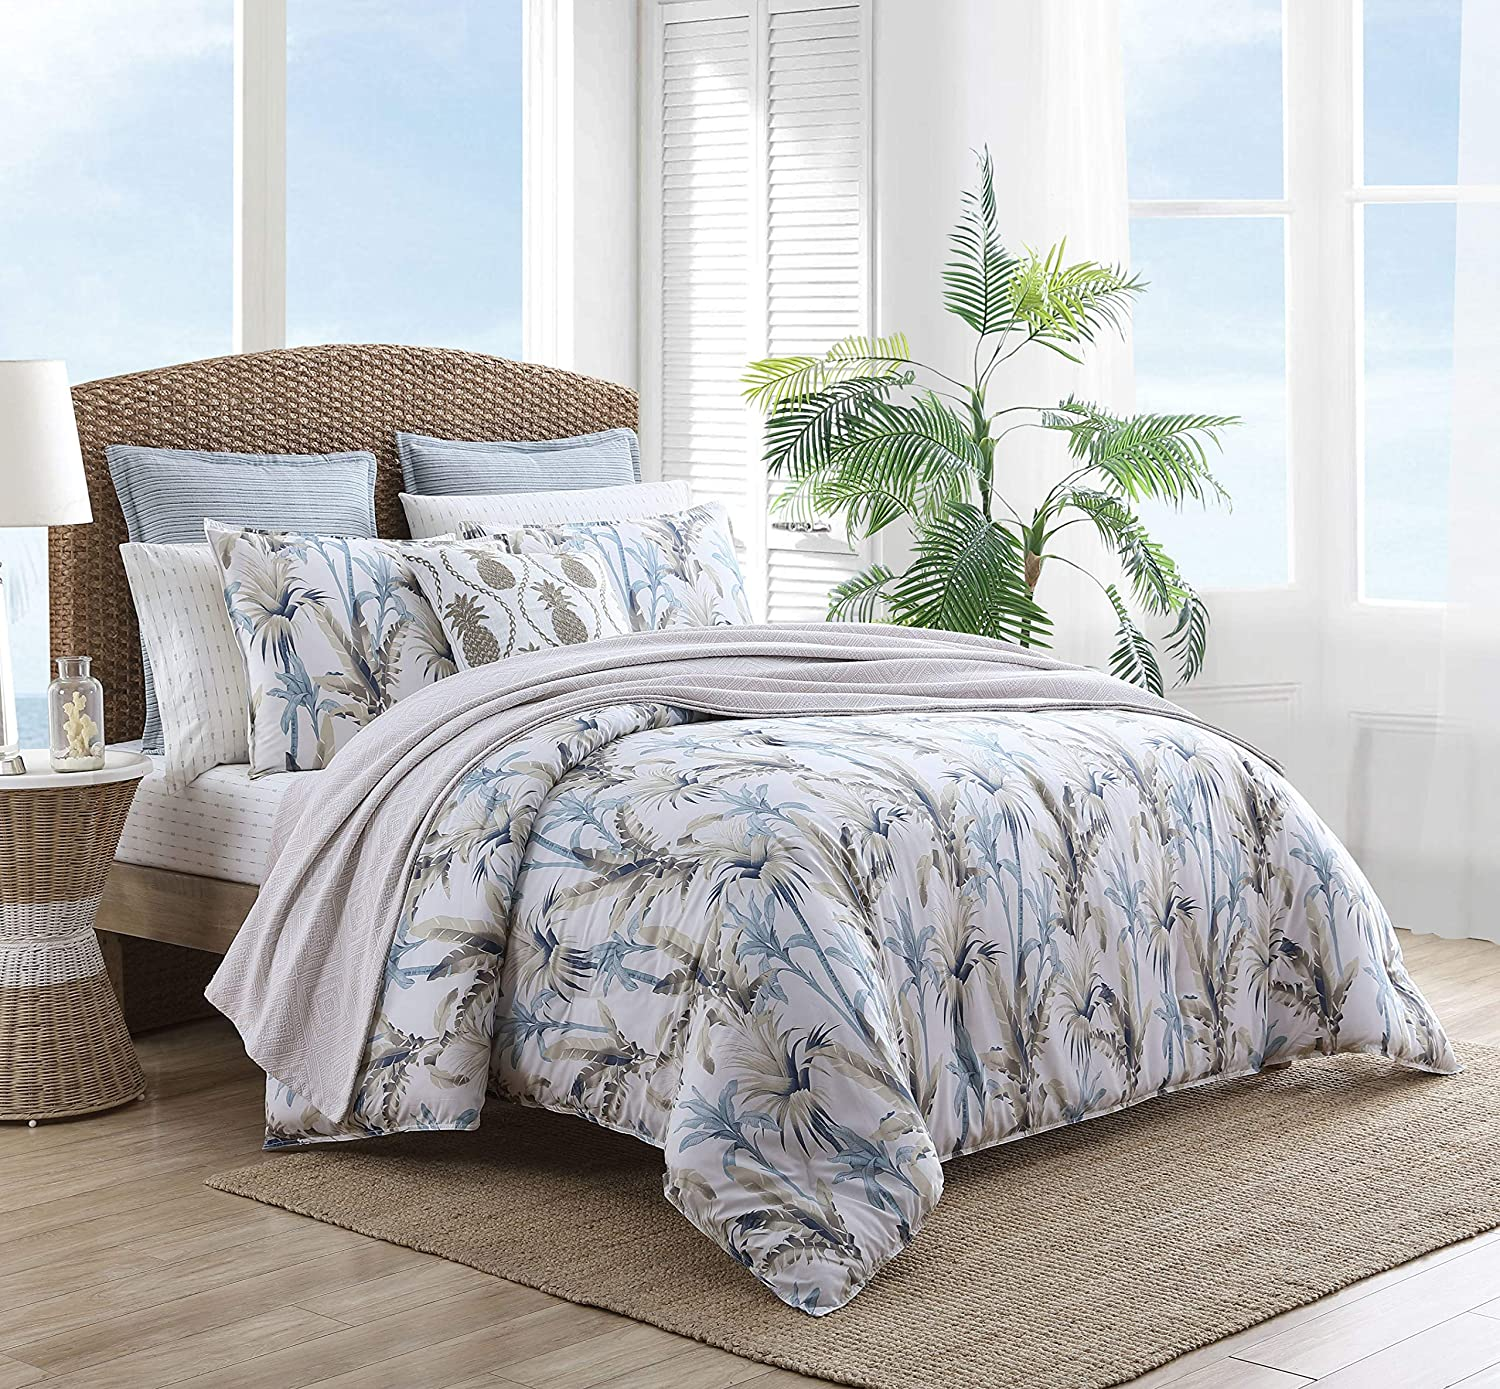 Tommy Bahama Home | Catalina Collection Cotton Ultra Soft Comforter, All Season Premium 3 Piece Bedding Set, Stylish Delicate Design for Home Décor, Full/Queen, Blue